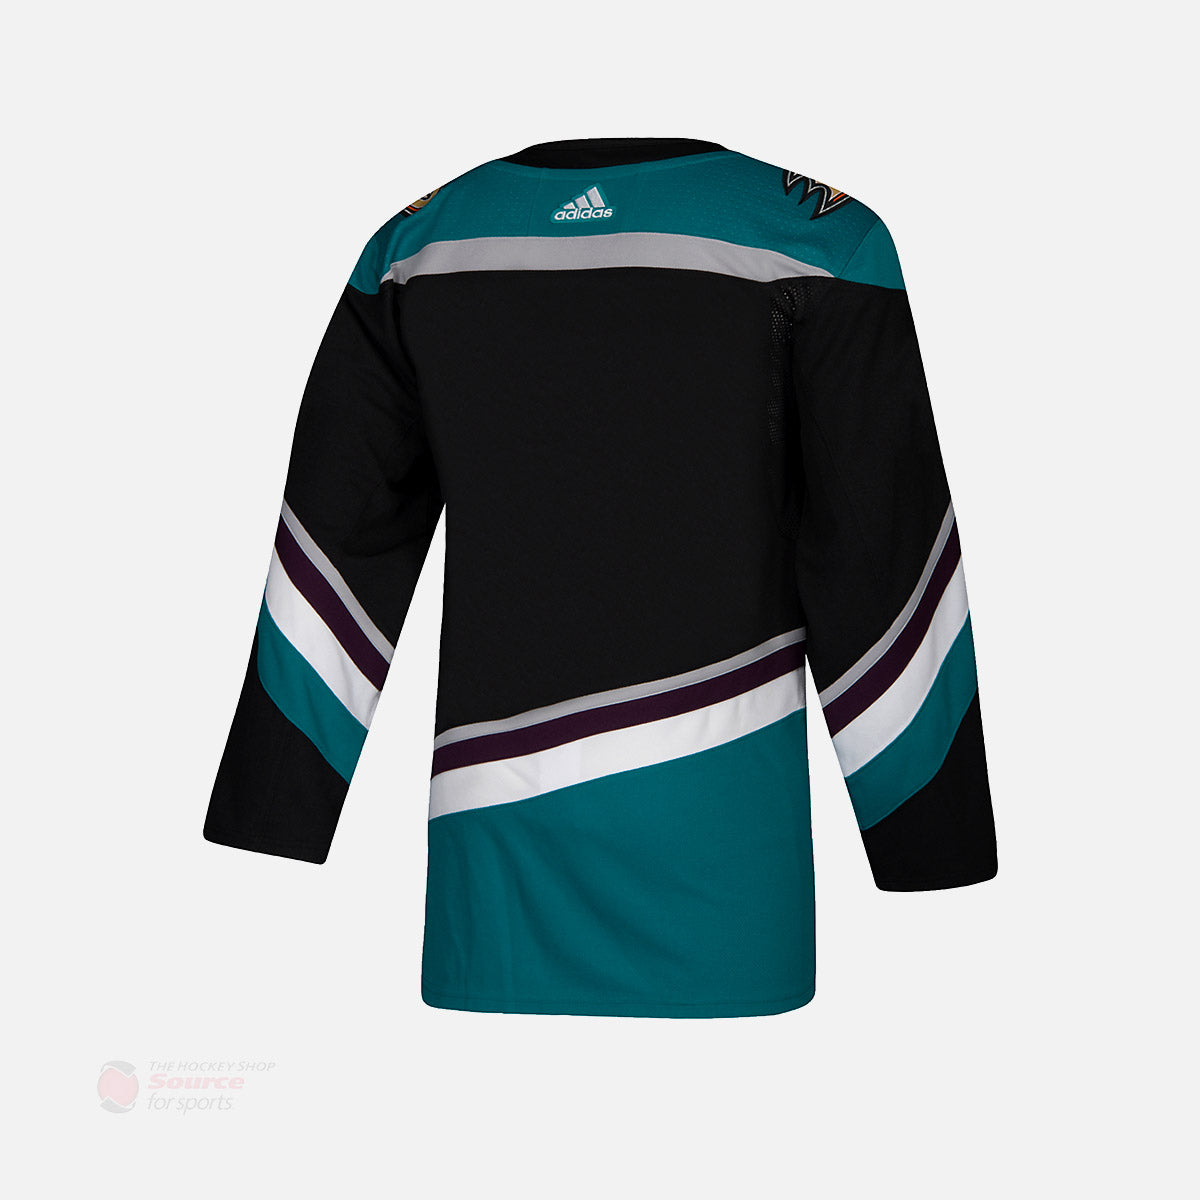 Anaheim Ducks Adidas Authentic Senior Alternate Jersey